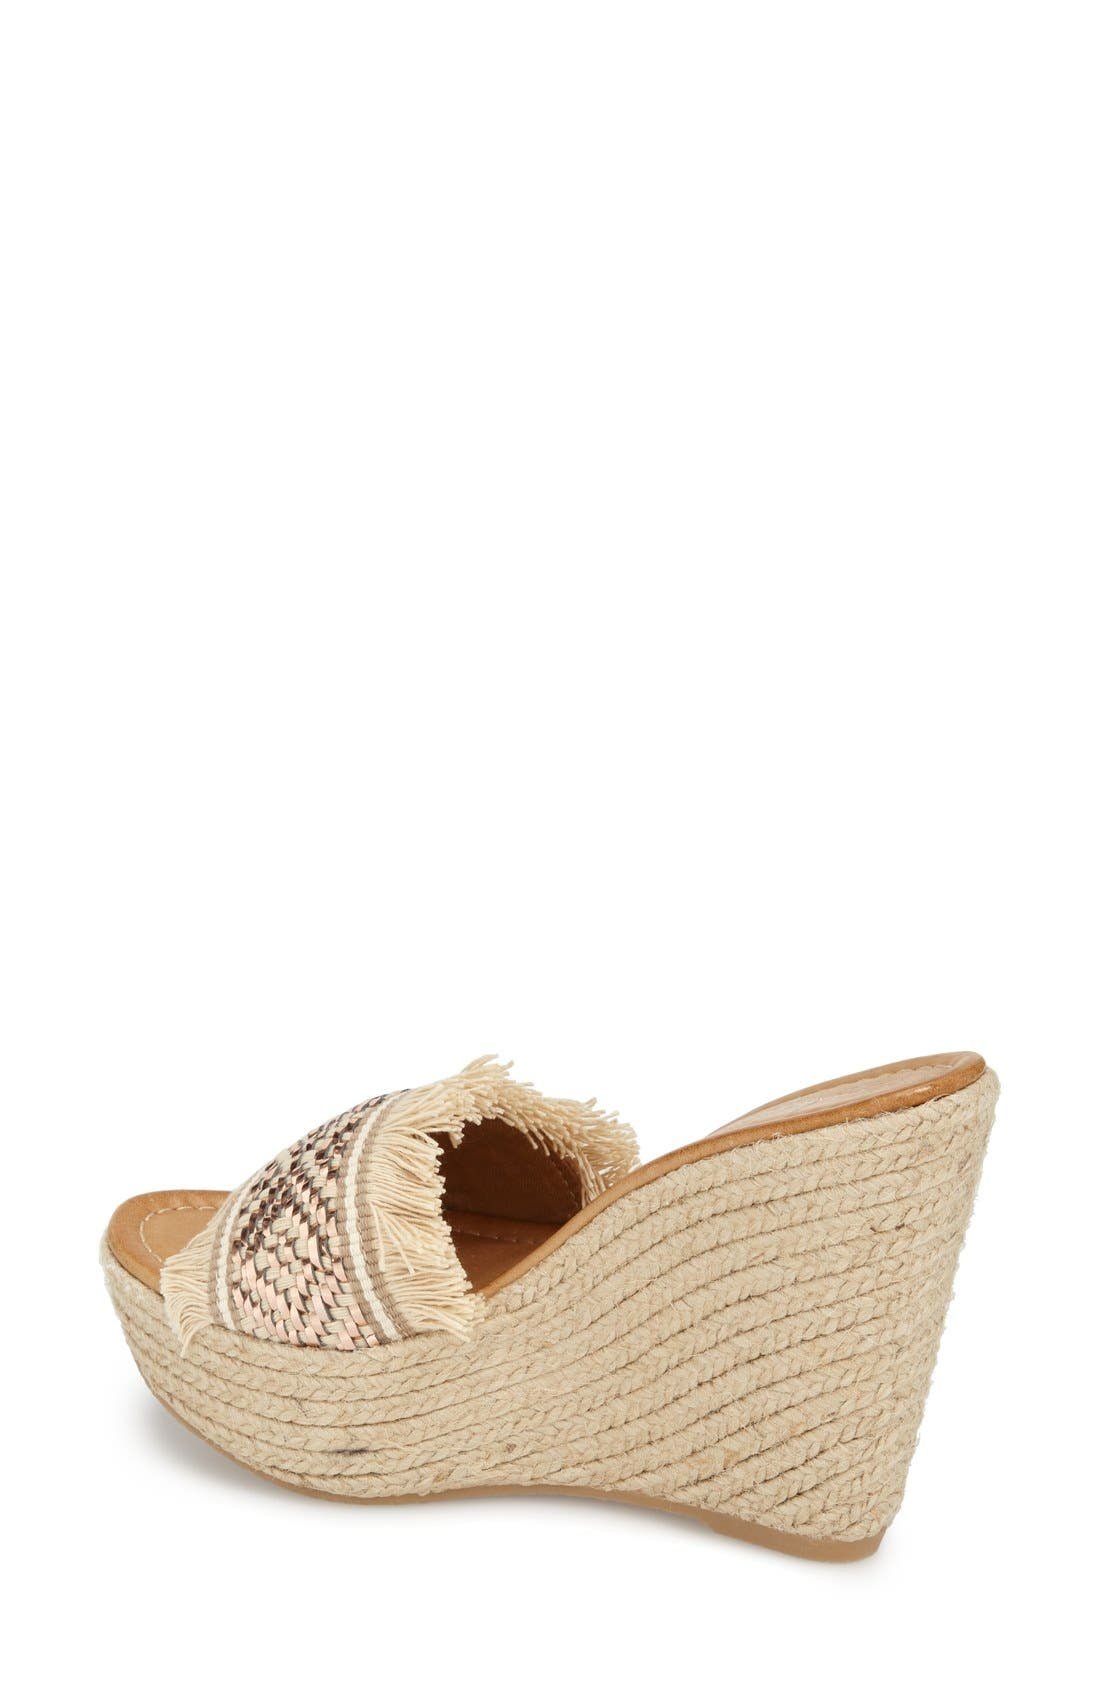 Alternate Image 2  - Charles David 'Dana' Fringe Wedge Sandal (Women)